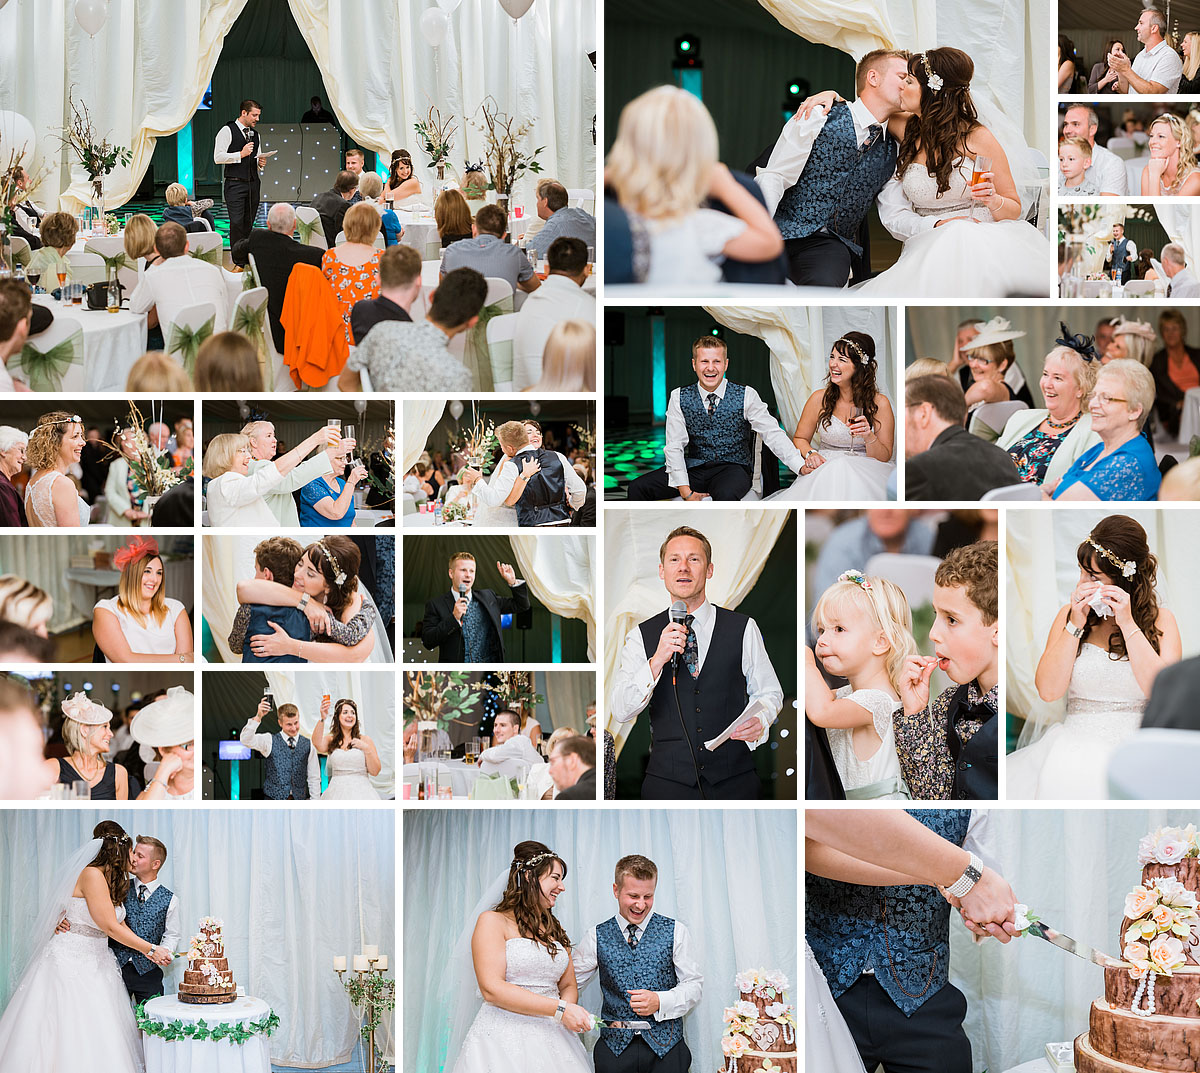 Lordswood Wedding Reception Photos